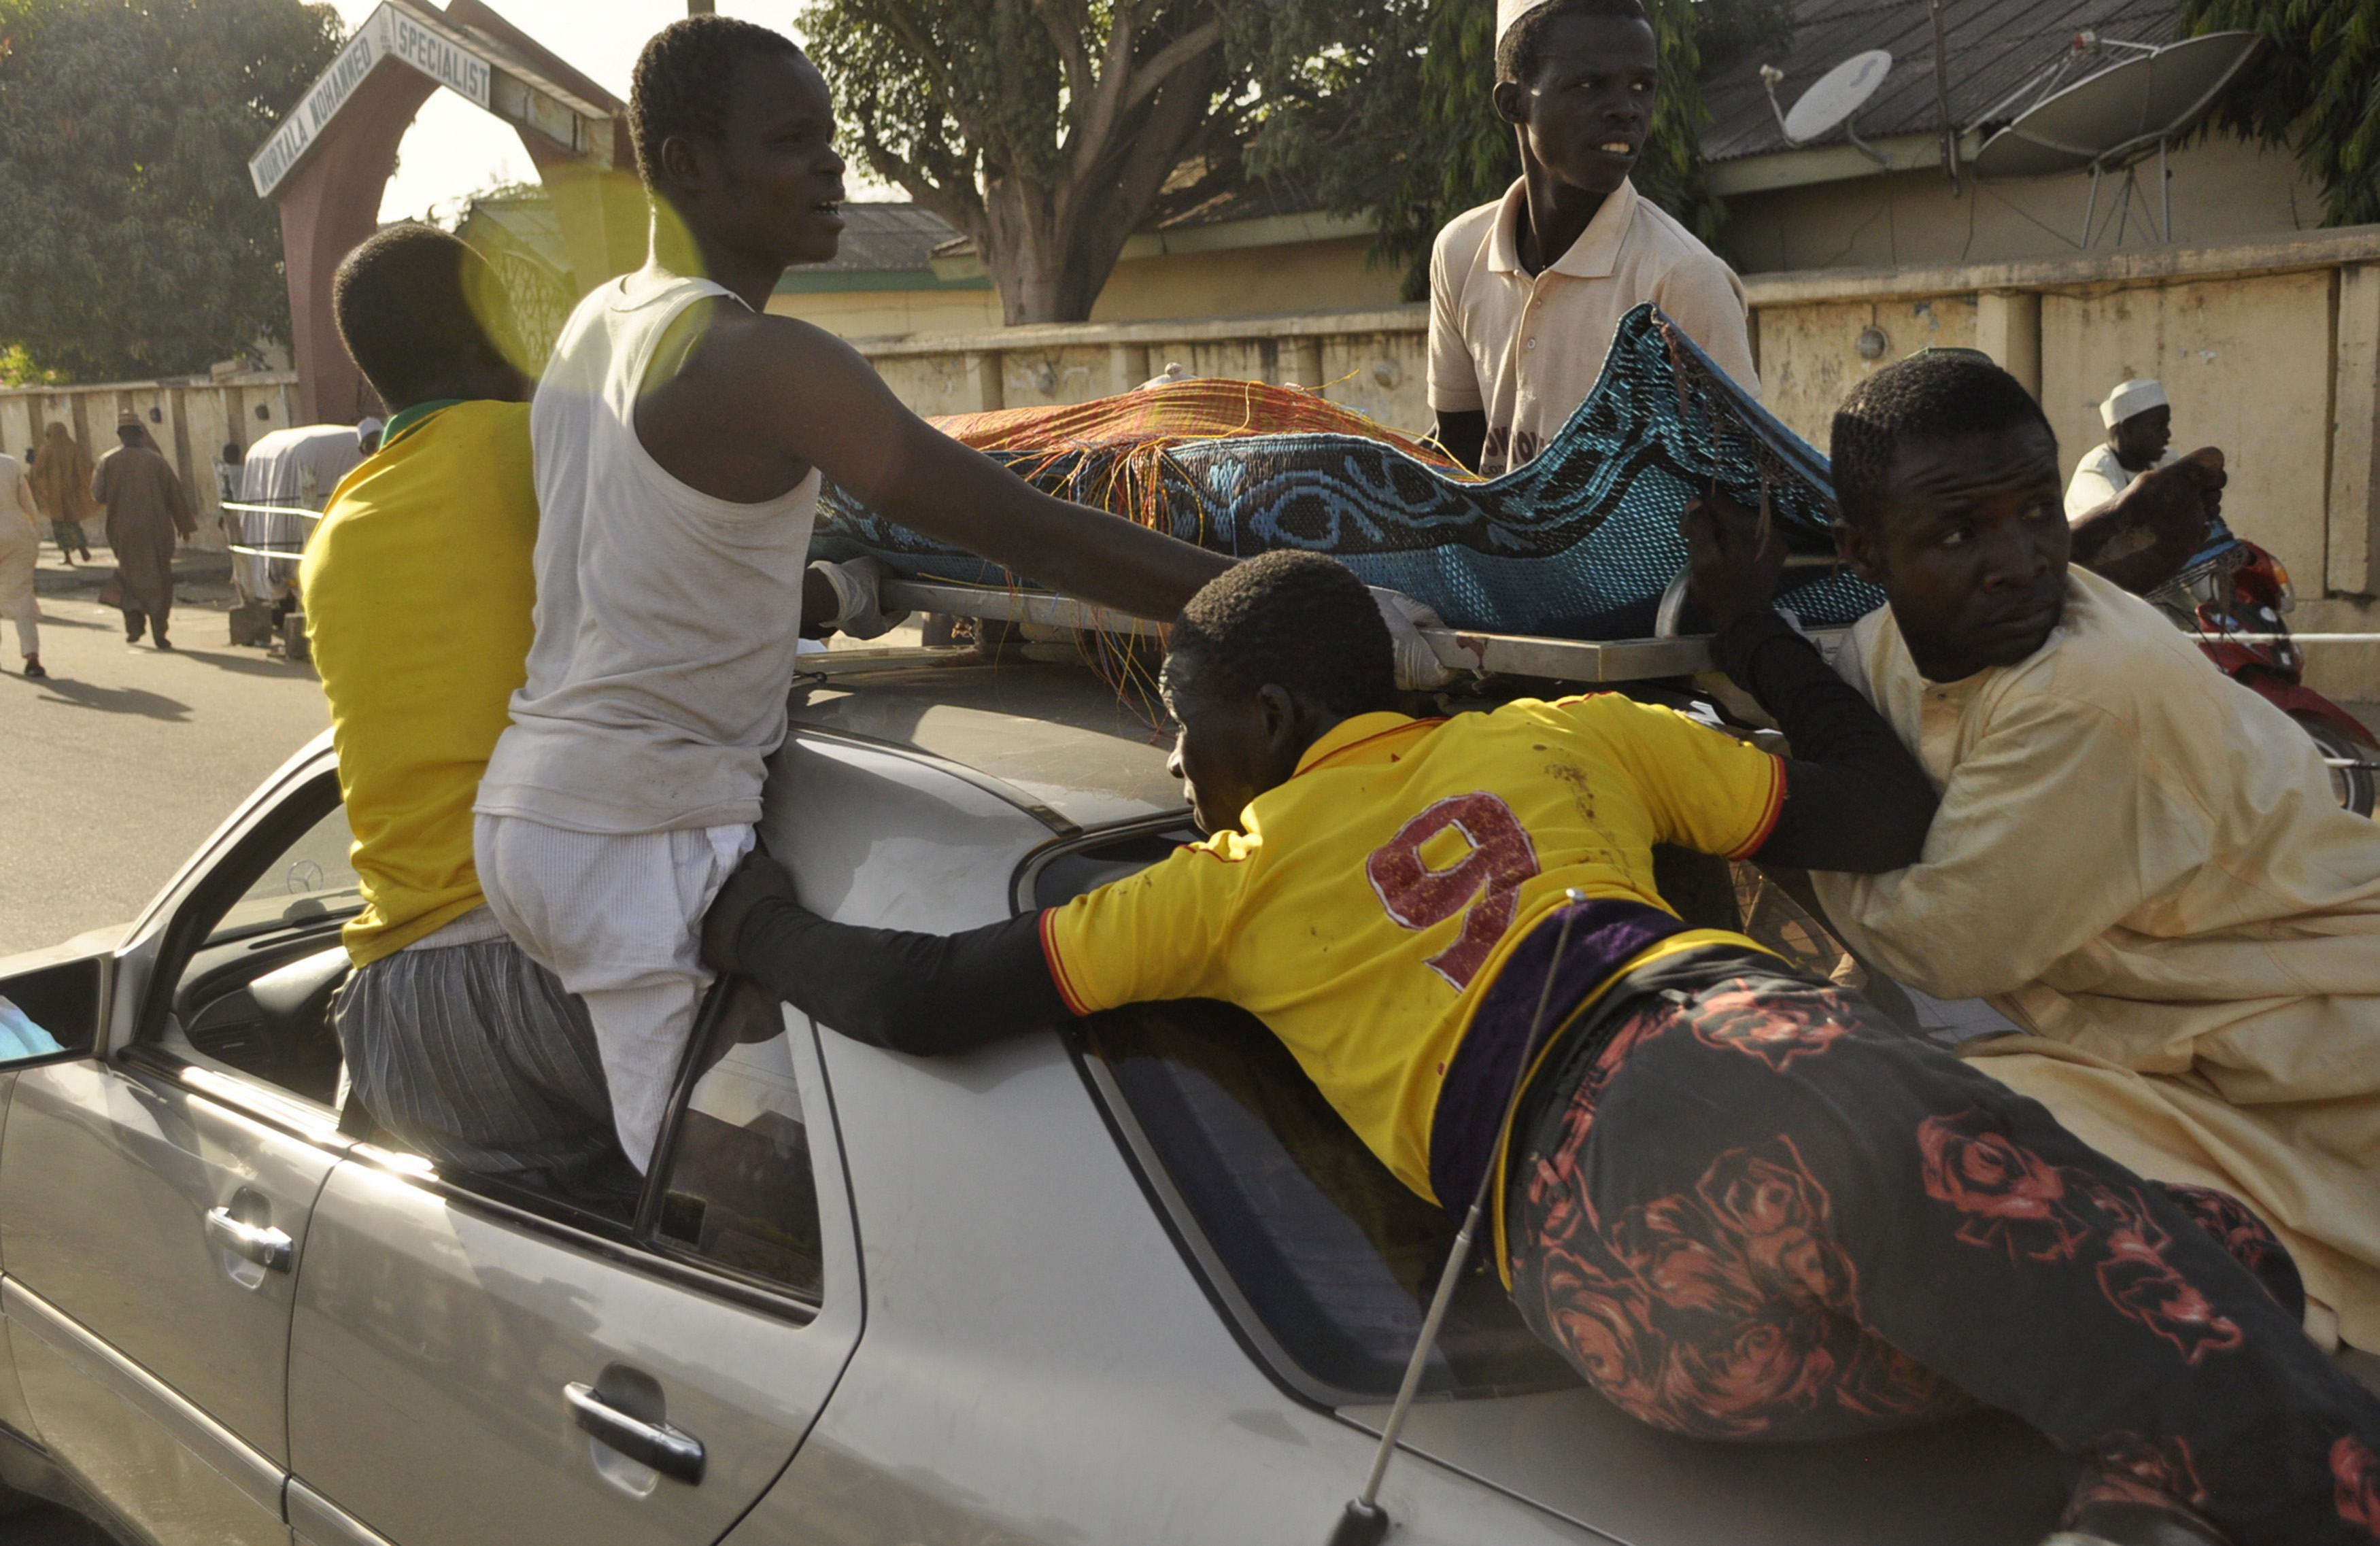 The remains of the Kano central mosque bombing victim is carried on the top of a car from the Murtala Mohammed specialist Hospital for burial according to Muslim rites, in Kano State